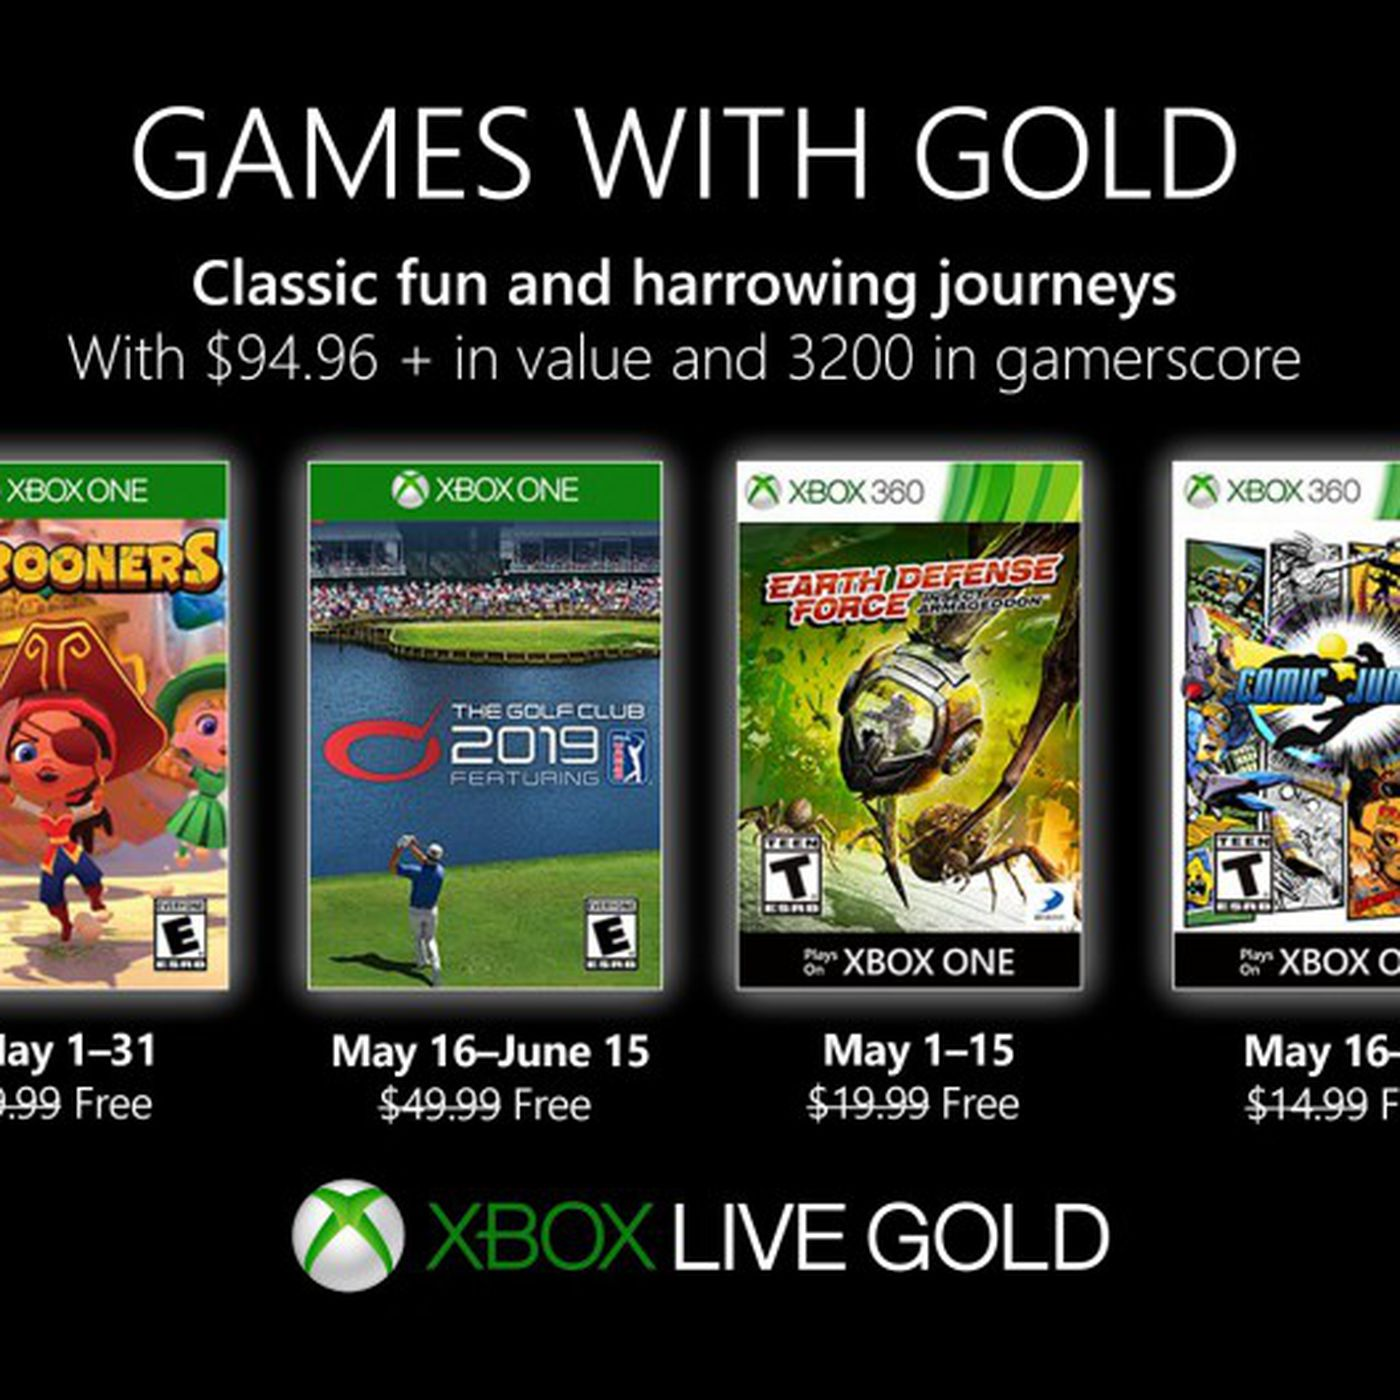 Xbox Gold Games June 2020.Xbox Games With Gold May 2019 Free Games Announced Polygon